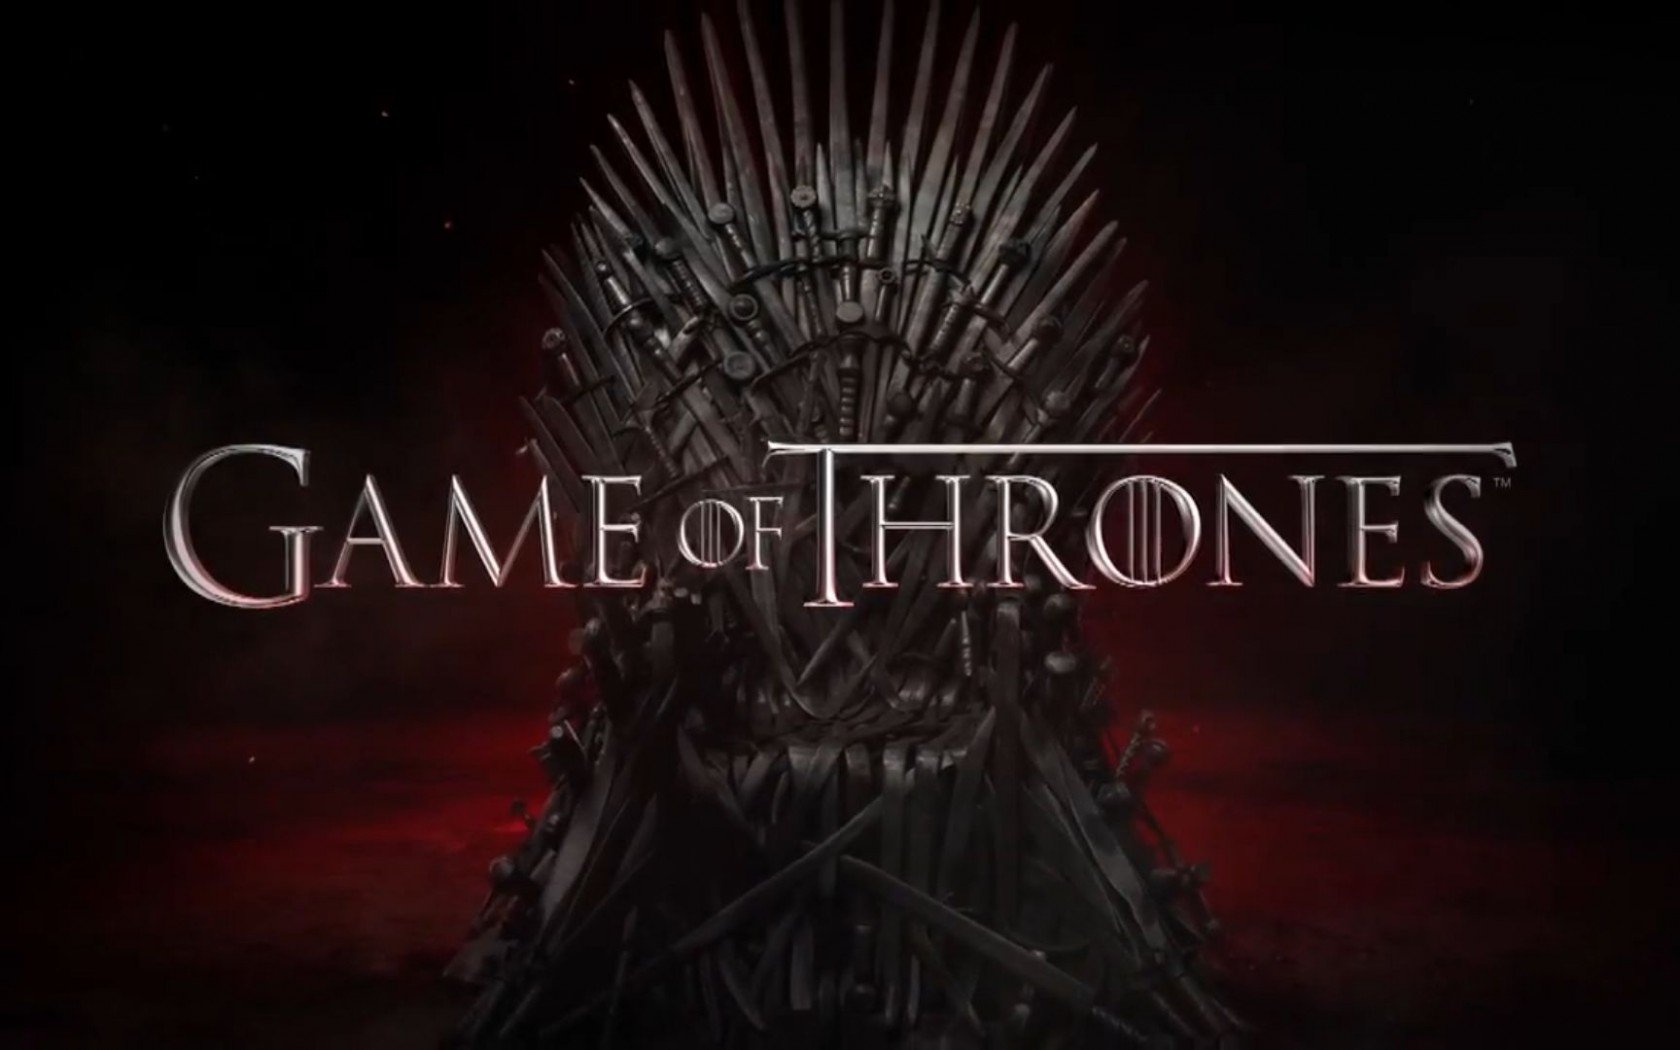 Game of Thrones Widescreen and Full HD Wallpapers 1680x1050